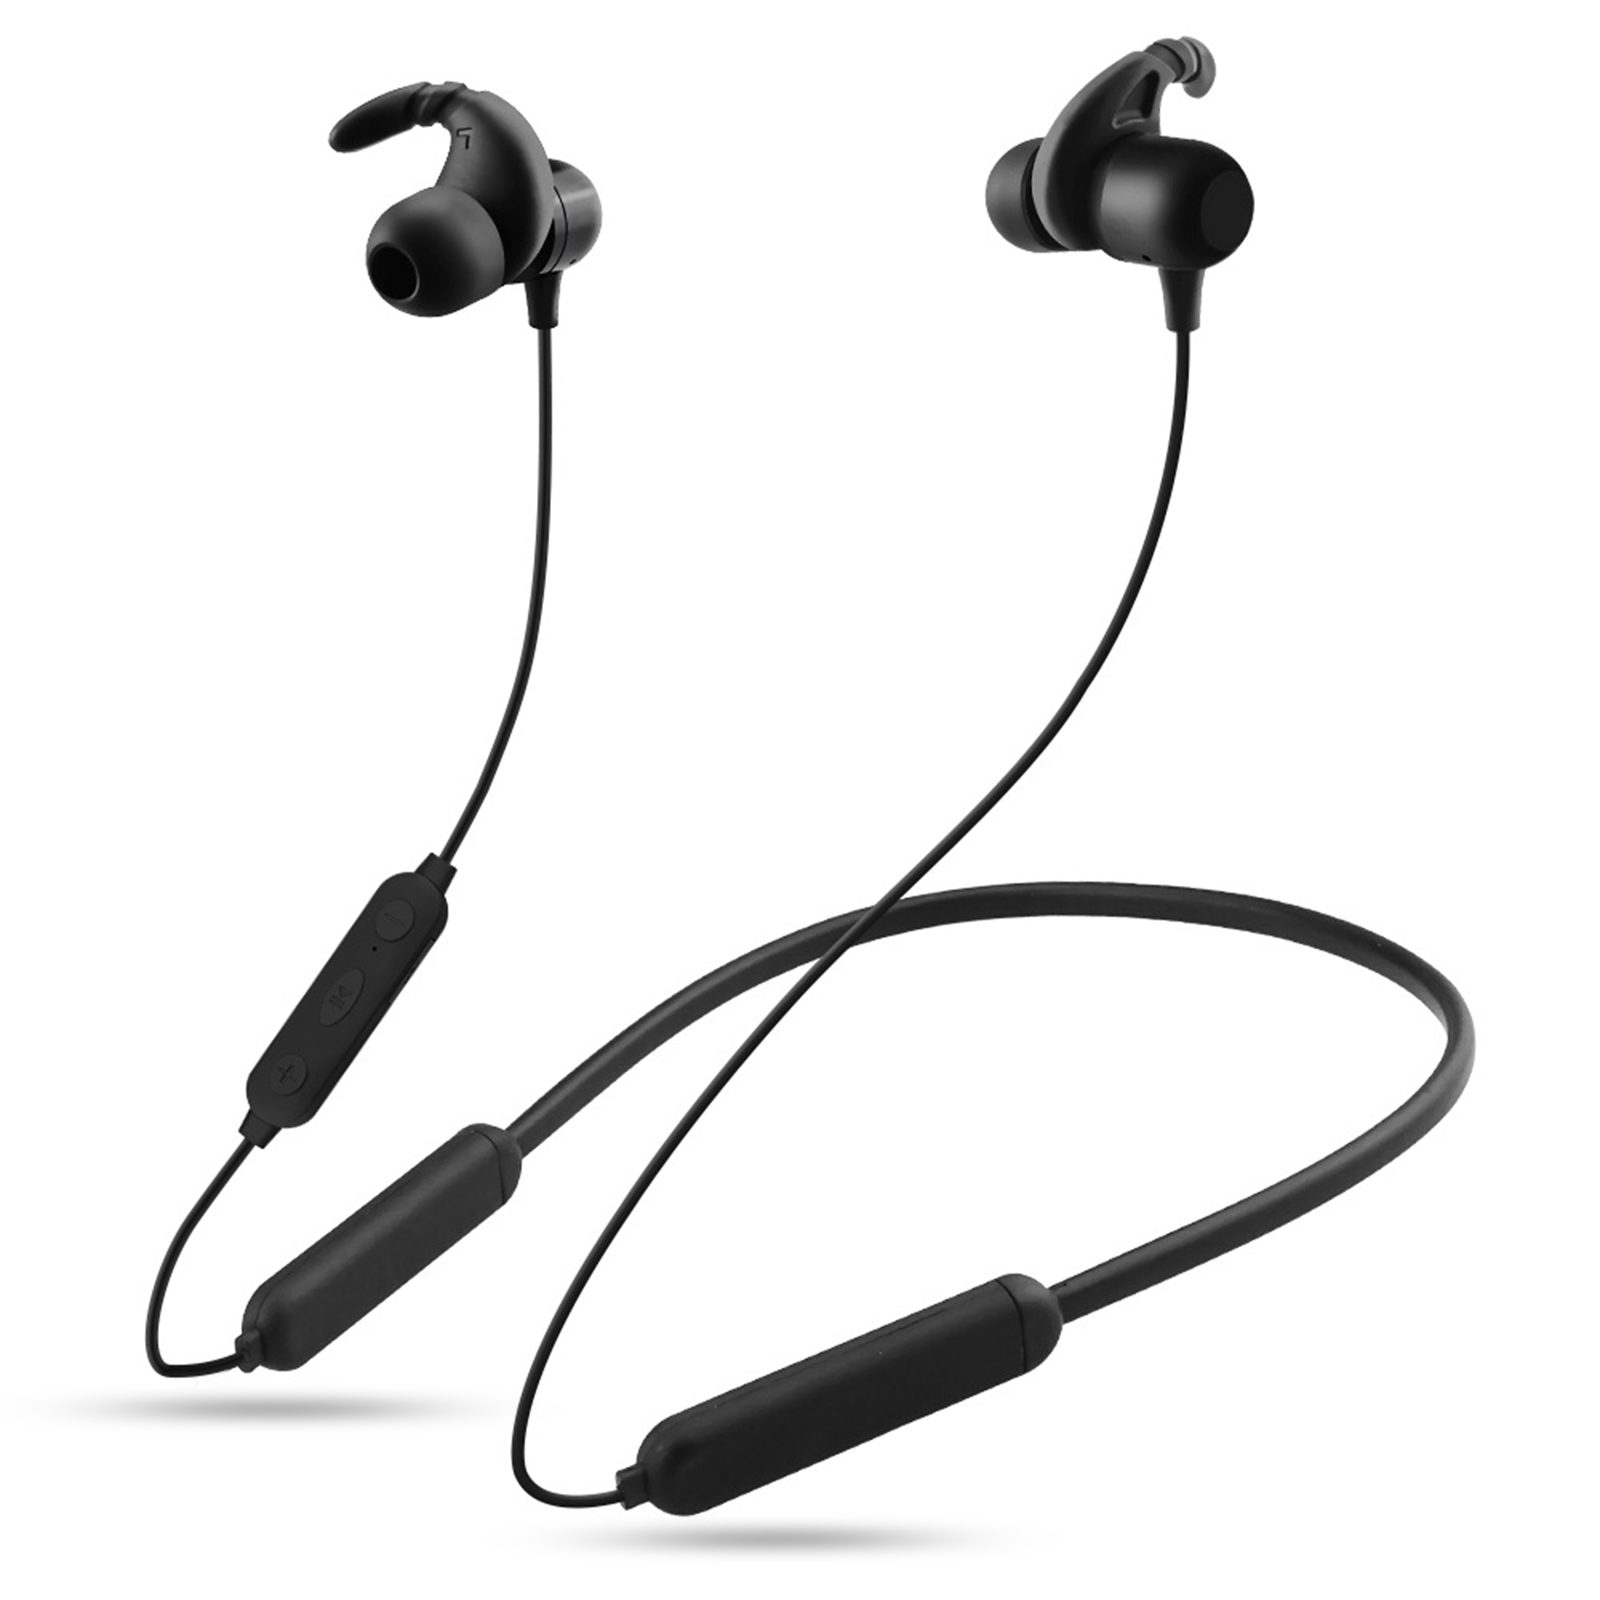 TSV Wireless Headphones, Bluetooth 4.2 Sweatproof Neckband Bluetooth Headphones Lightweight Earbuds In-Ear Earphones Sports Headsets Magnetic Earbuds Noise Cancelling